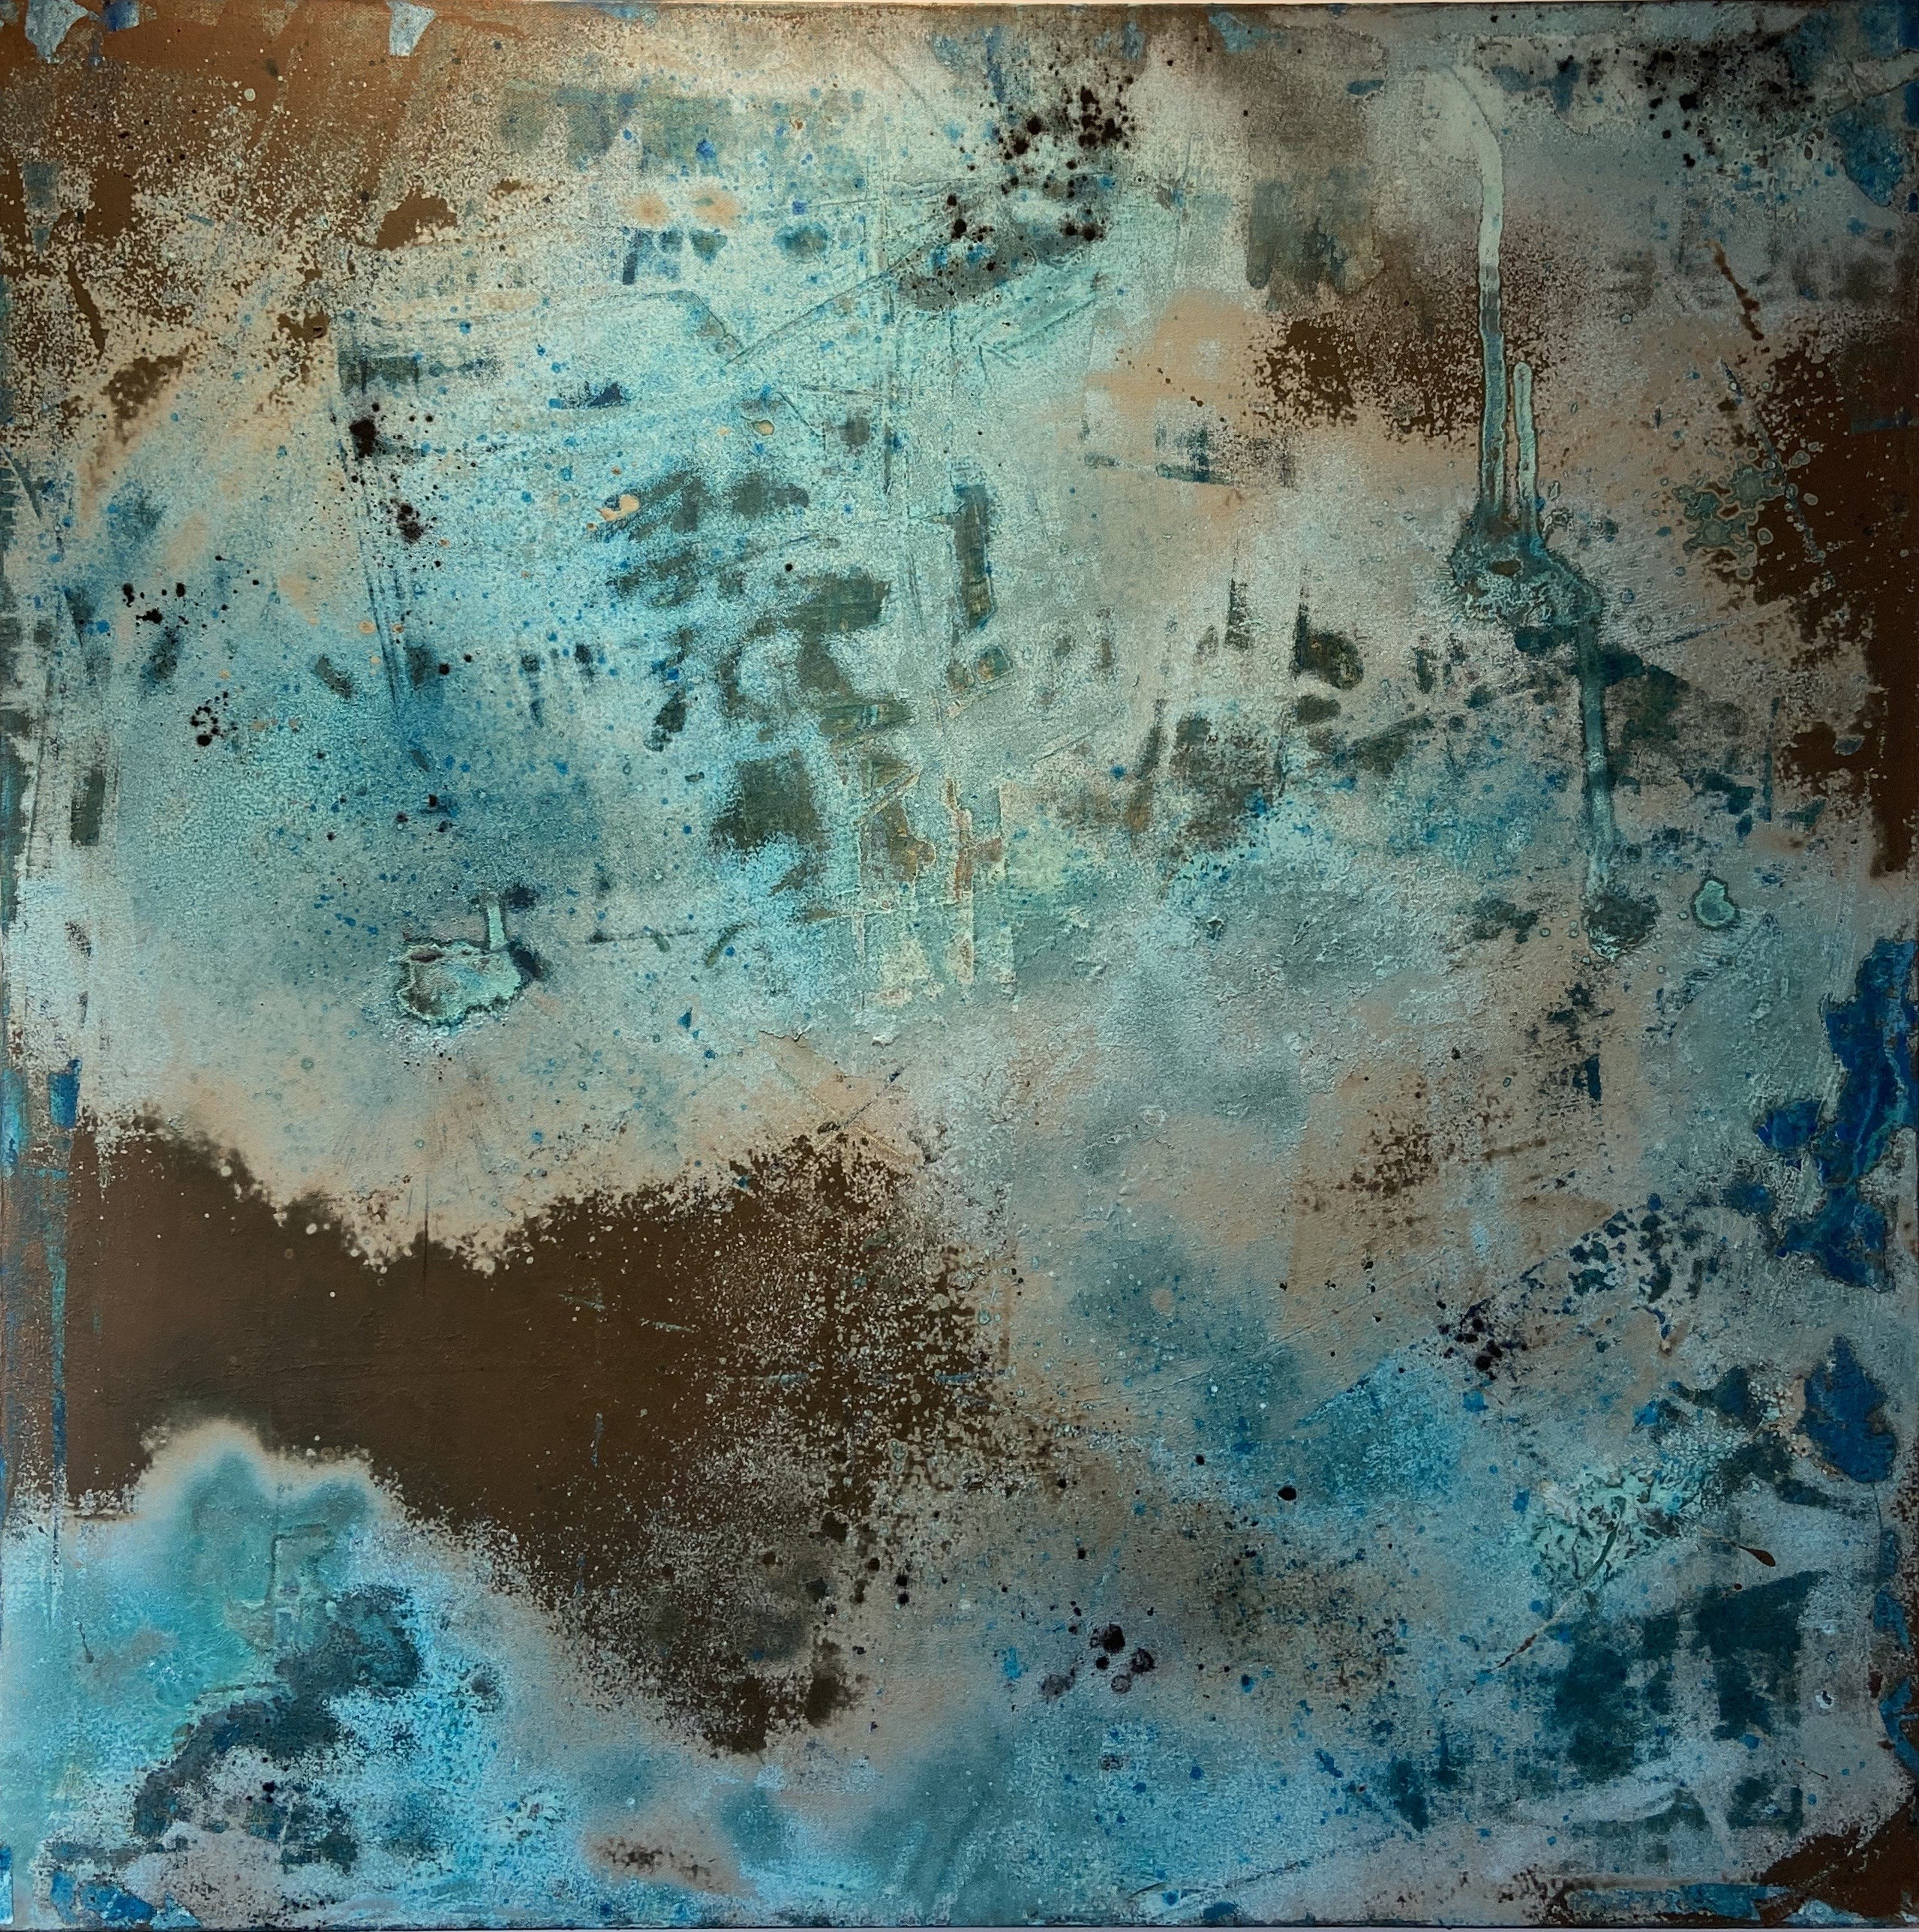 Rosannagh Scarlet Esson - Alchemy - Copper I, 2020, Copper paint, soot, salt and rainwater on canvas,100 x 100 cm